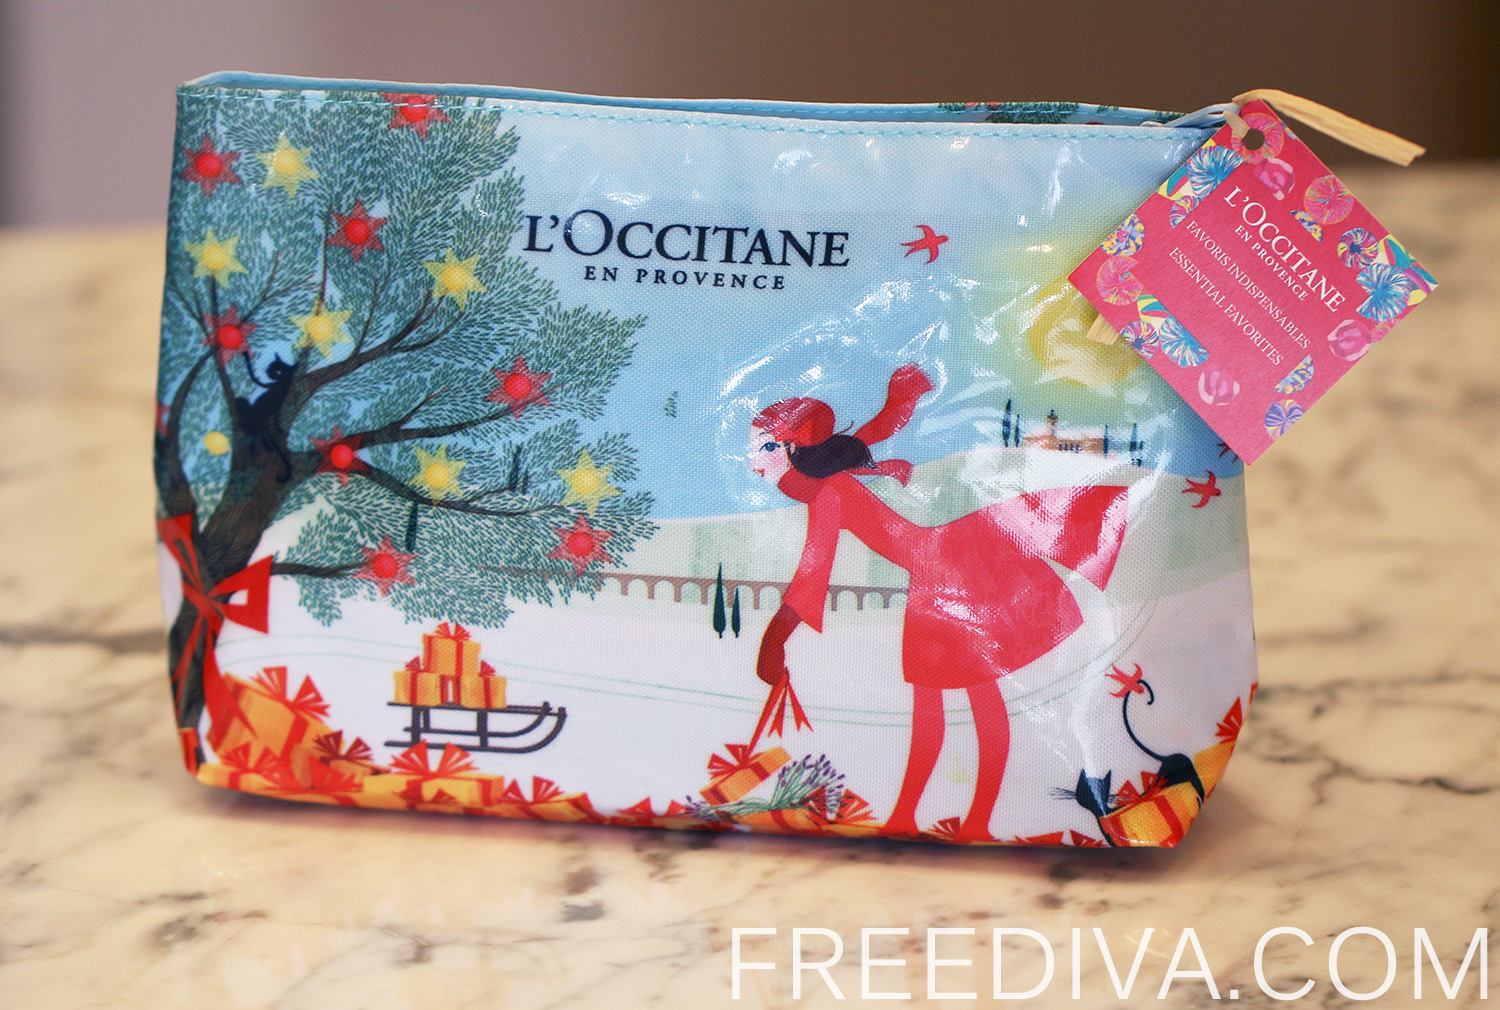 Best of L'Occitane Travel Collection